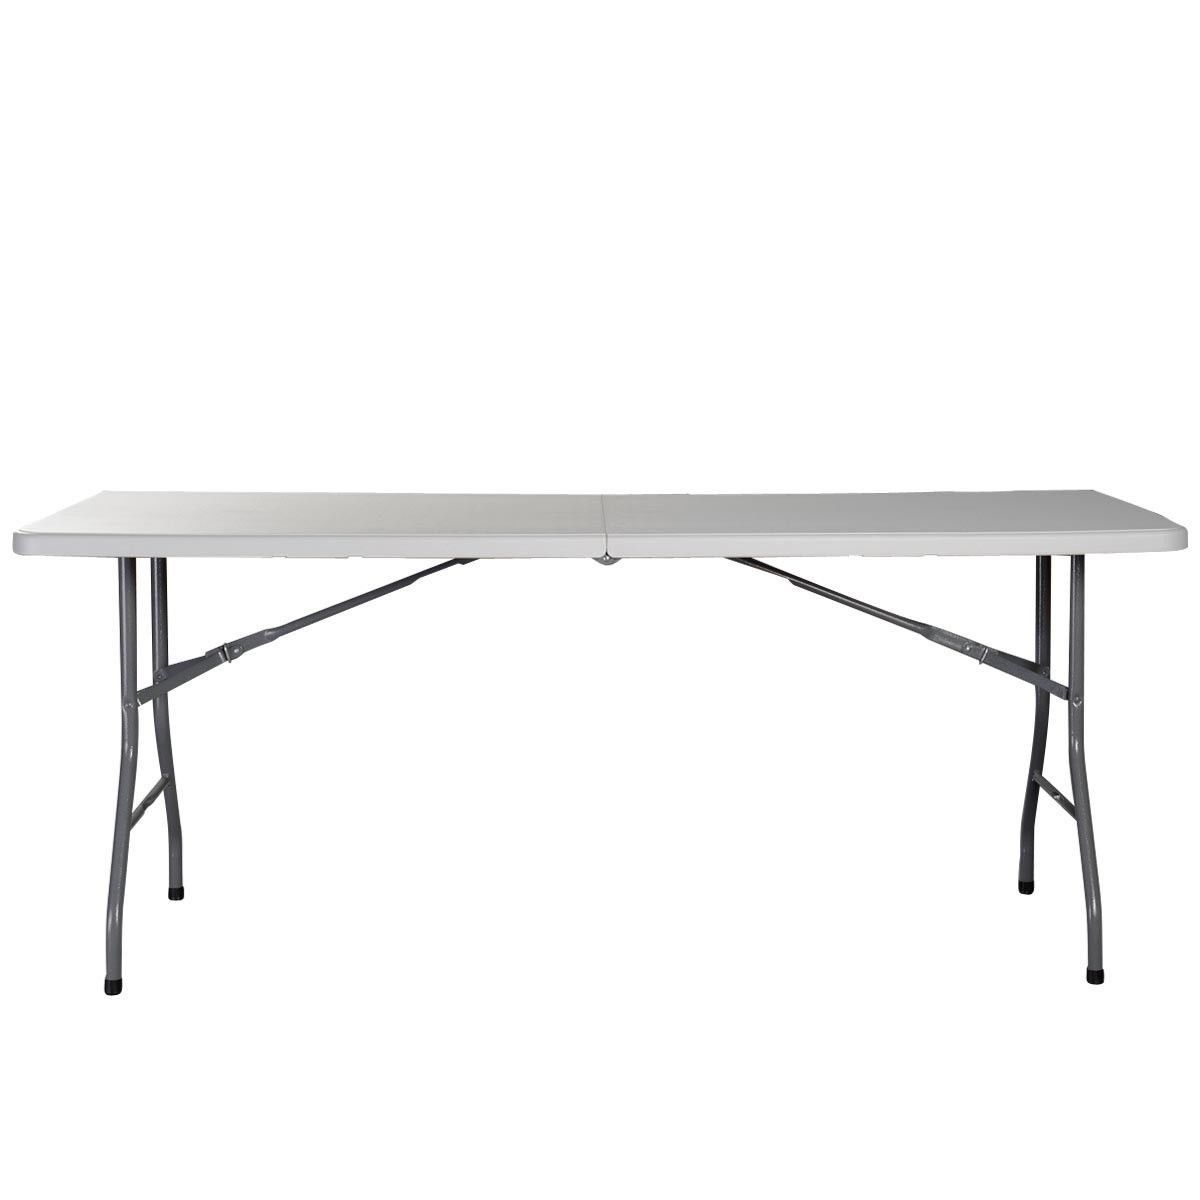 6 Folding Portable Plastic Outdoor Camp Table Camping Table Folding Table Outdoor Furniture Decor